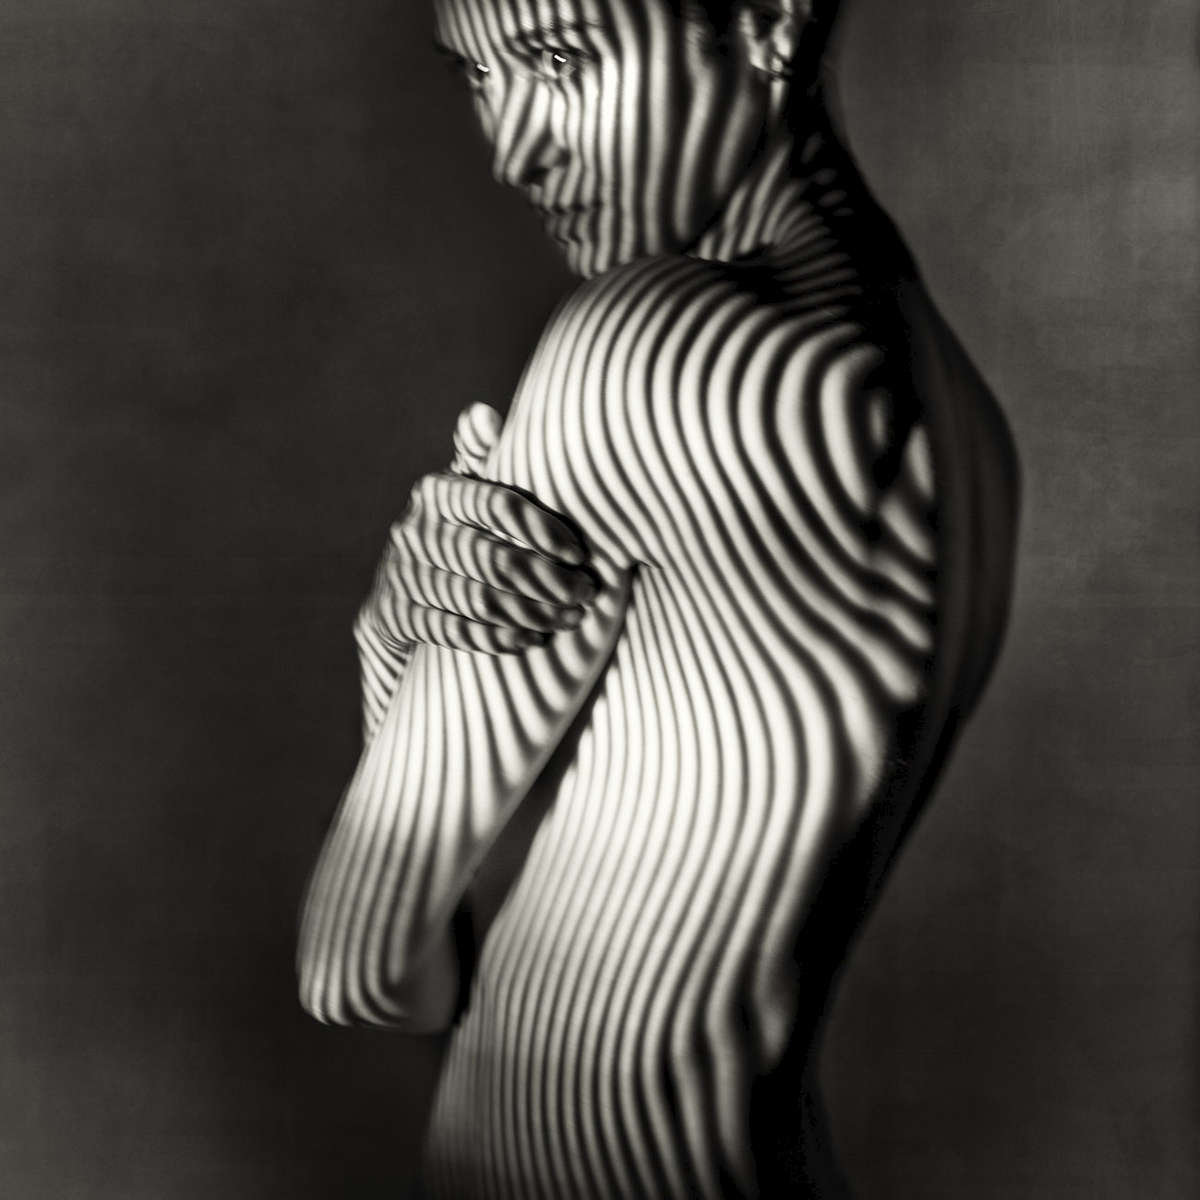 fine art black and white studio female nude with animal stripes projected